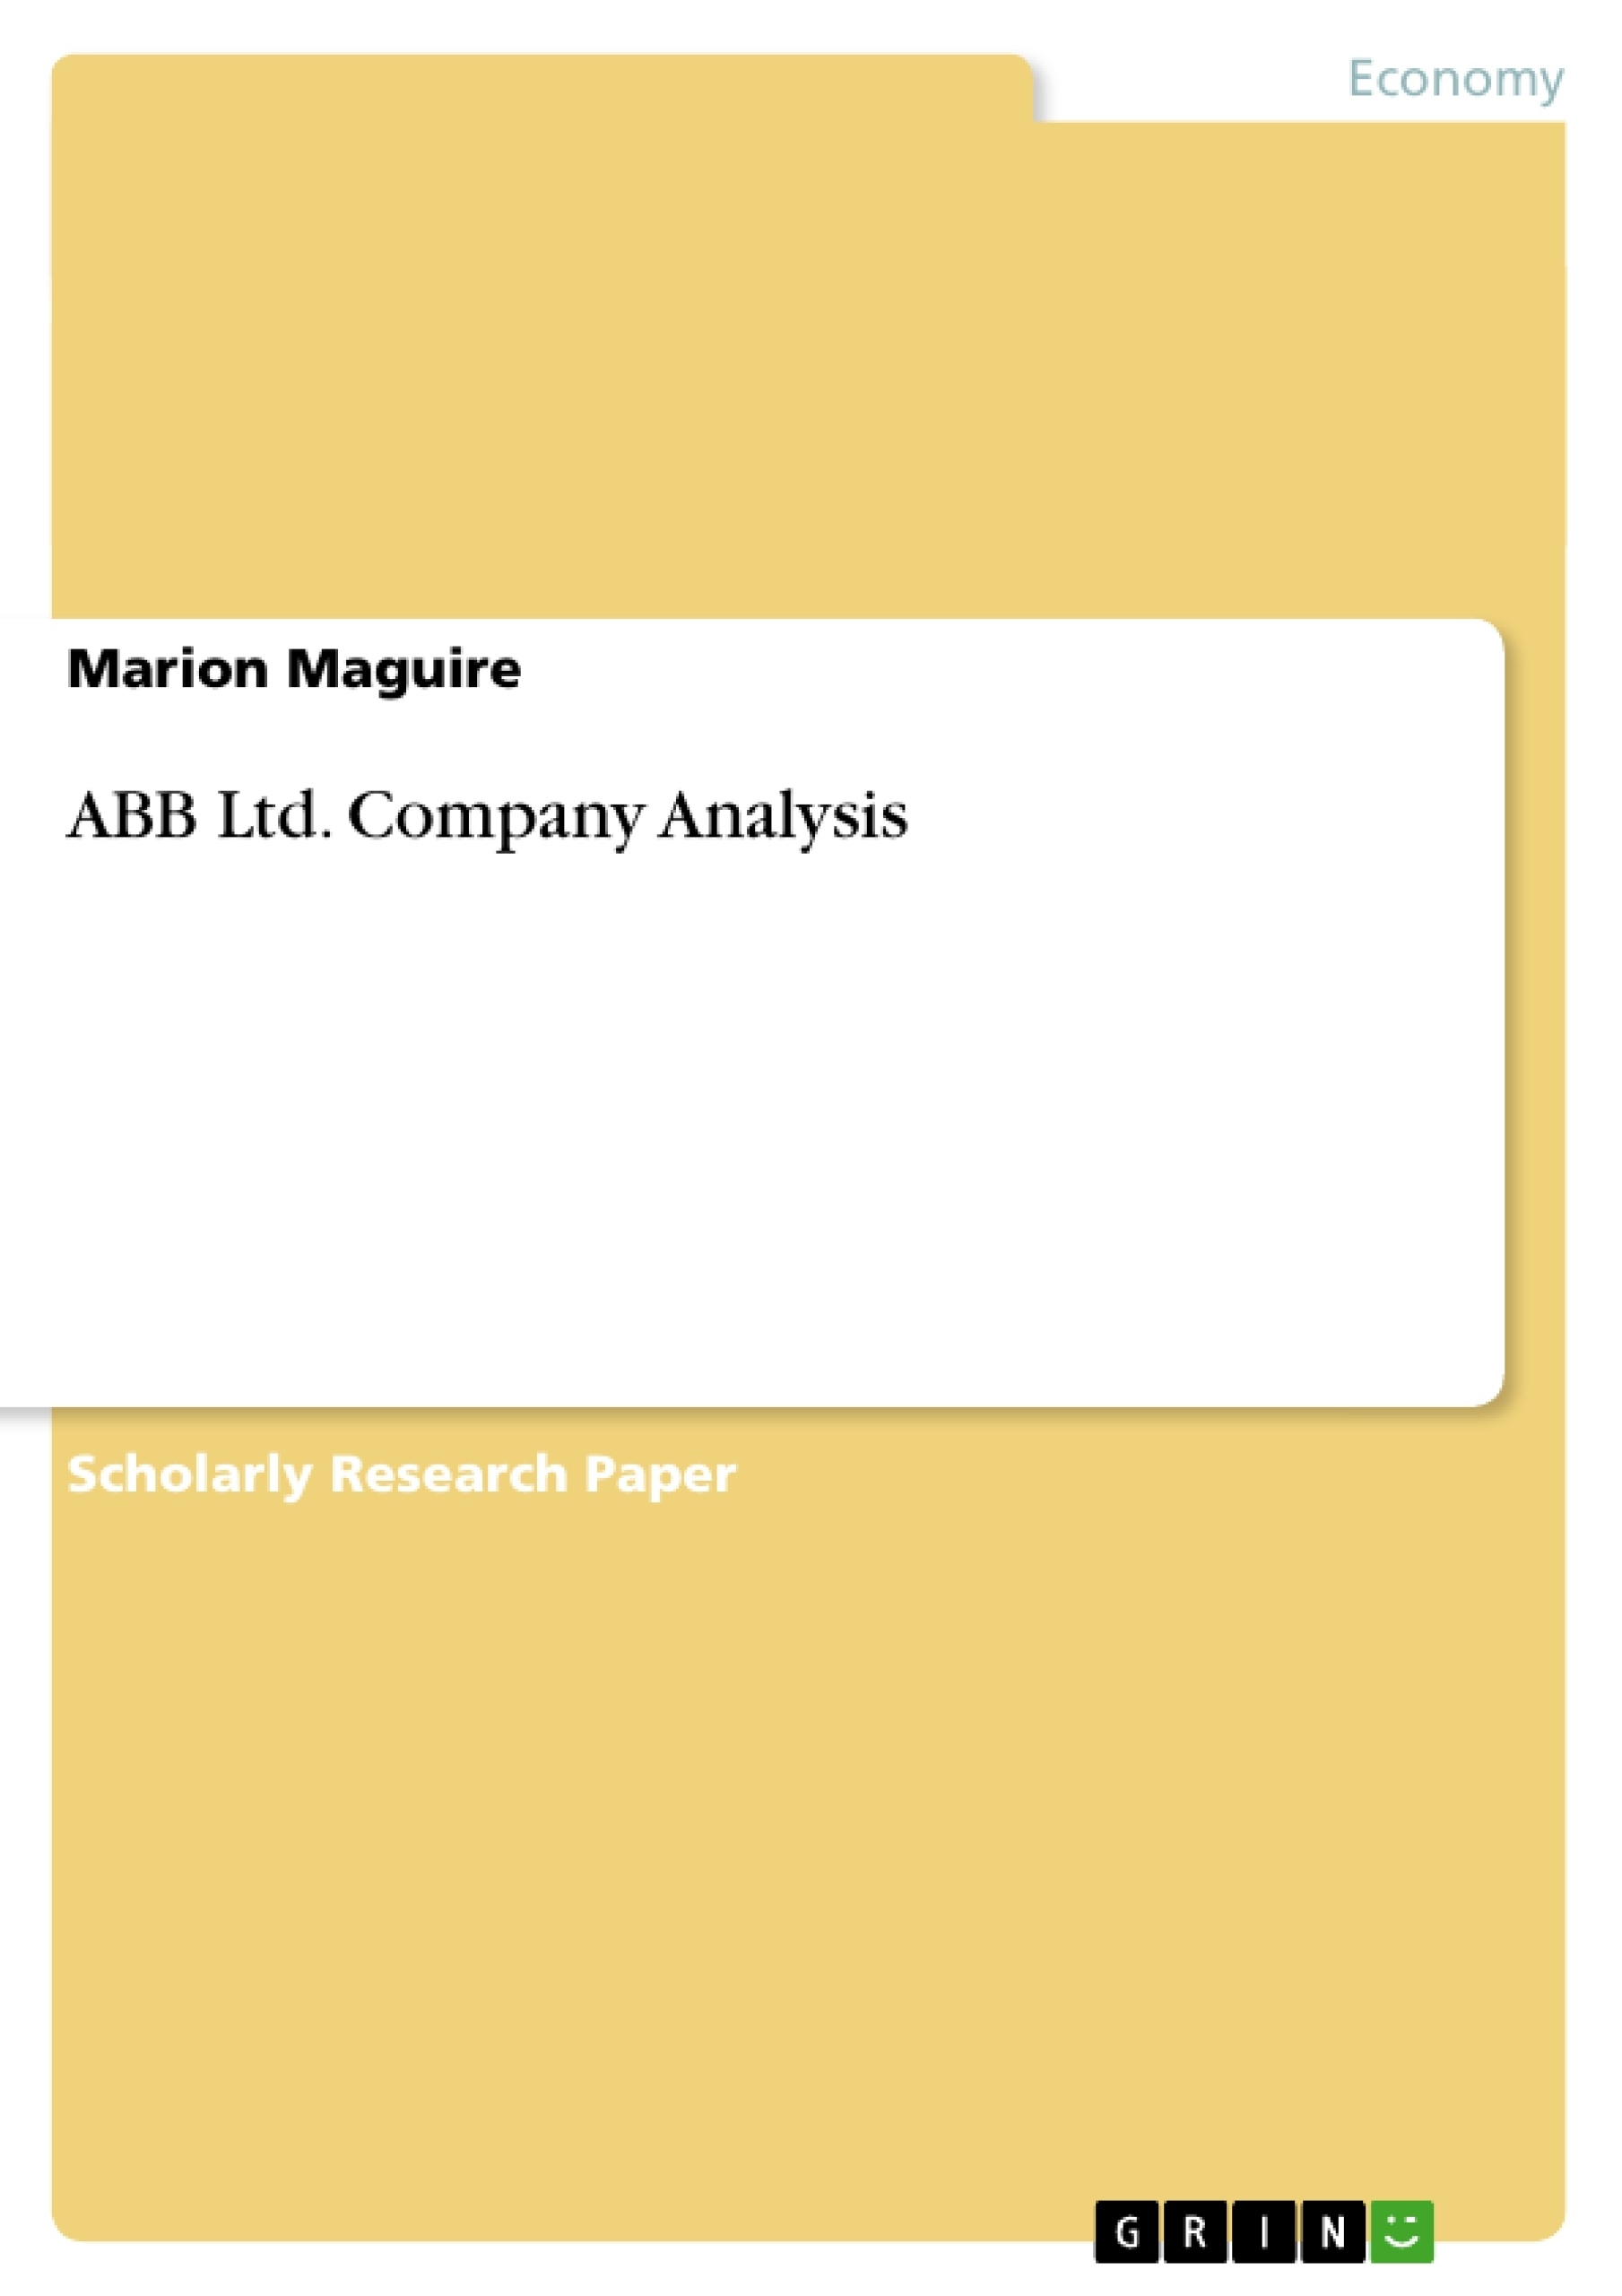 abb company analysis publish your master s thesis abb company analysis publish your master s thesis bachelor s thesis essay or term paper